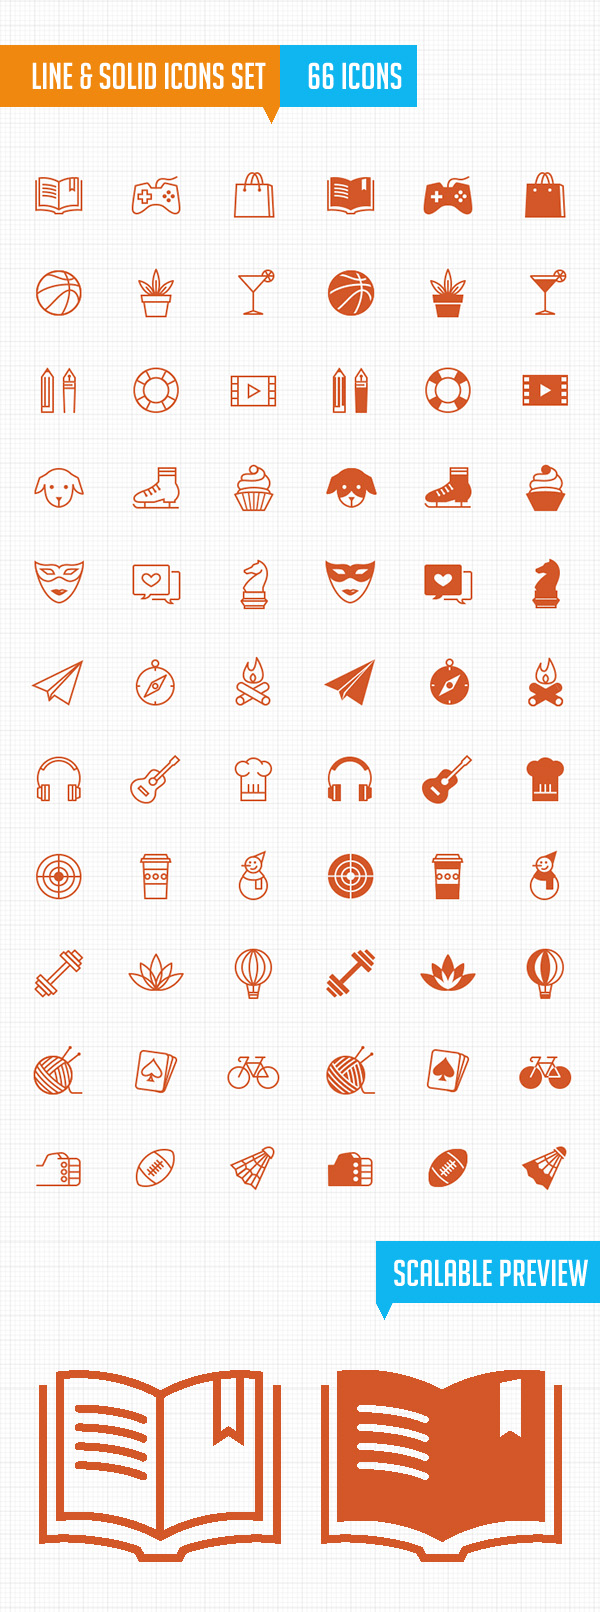 Line & Filled Leisure Activity Icons Set (66 Icons)